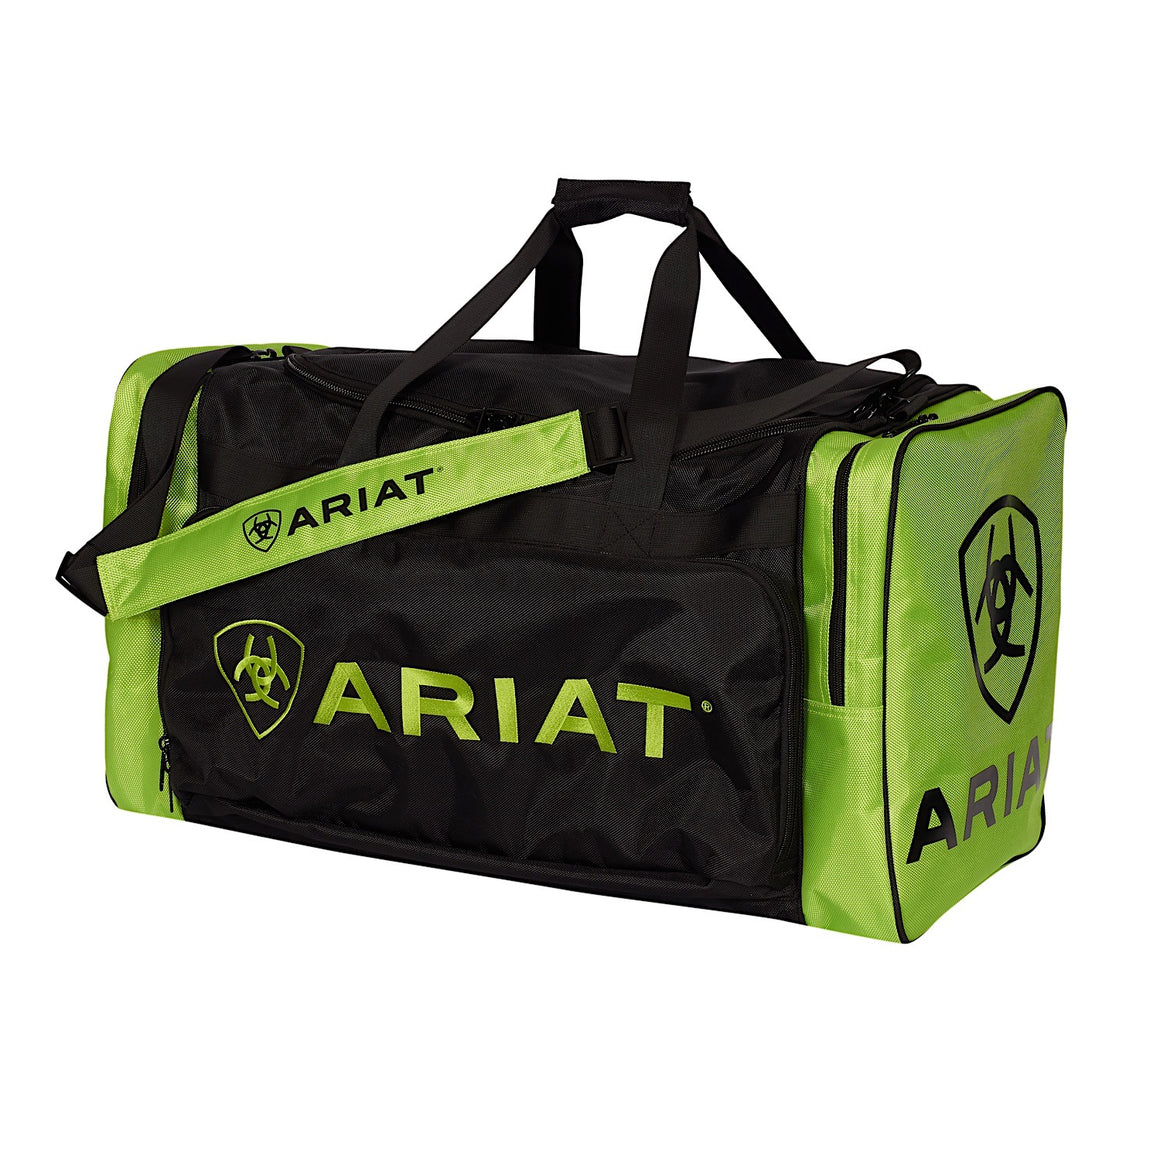 Ariat Gear Bag Green/Black 4-600GR